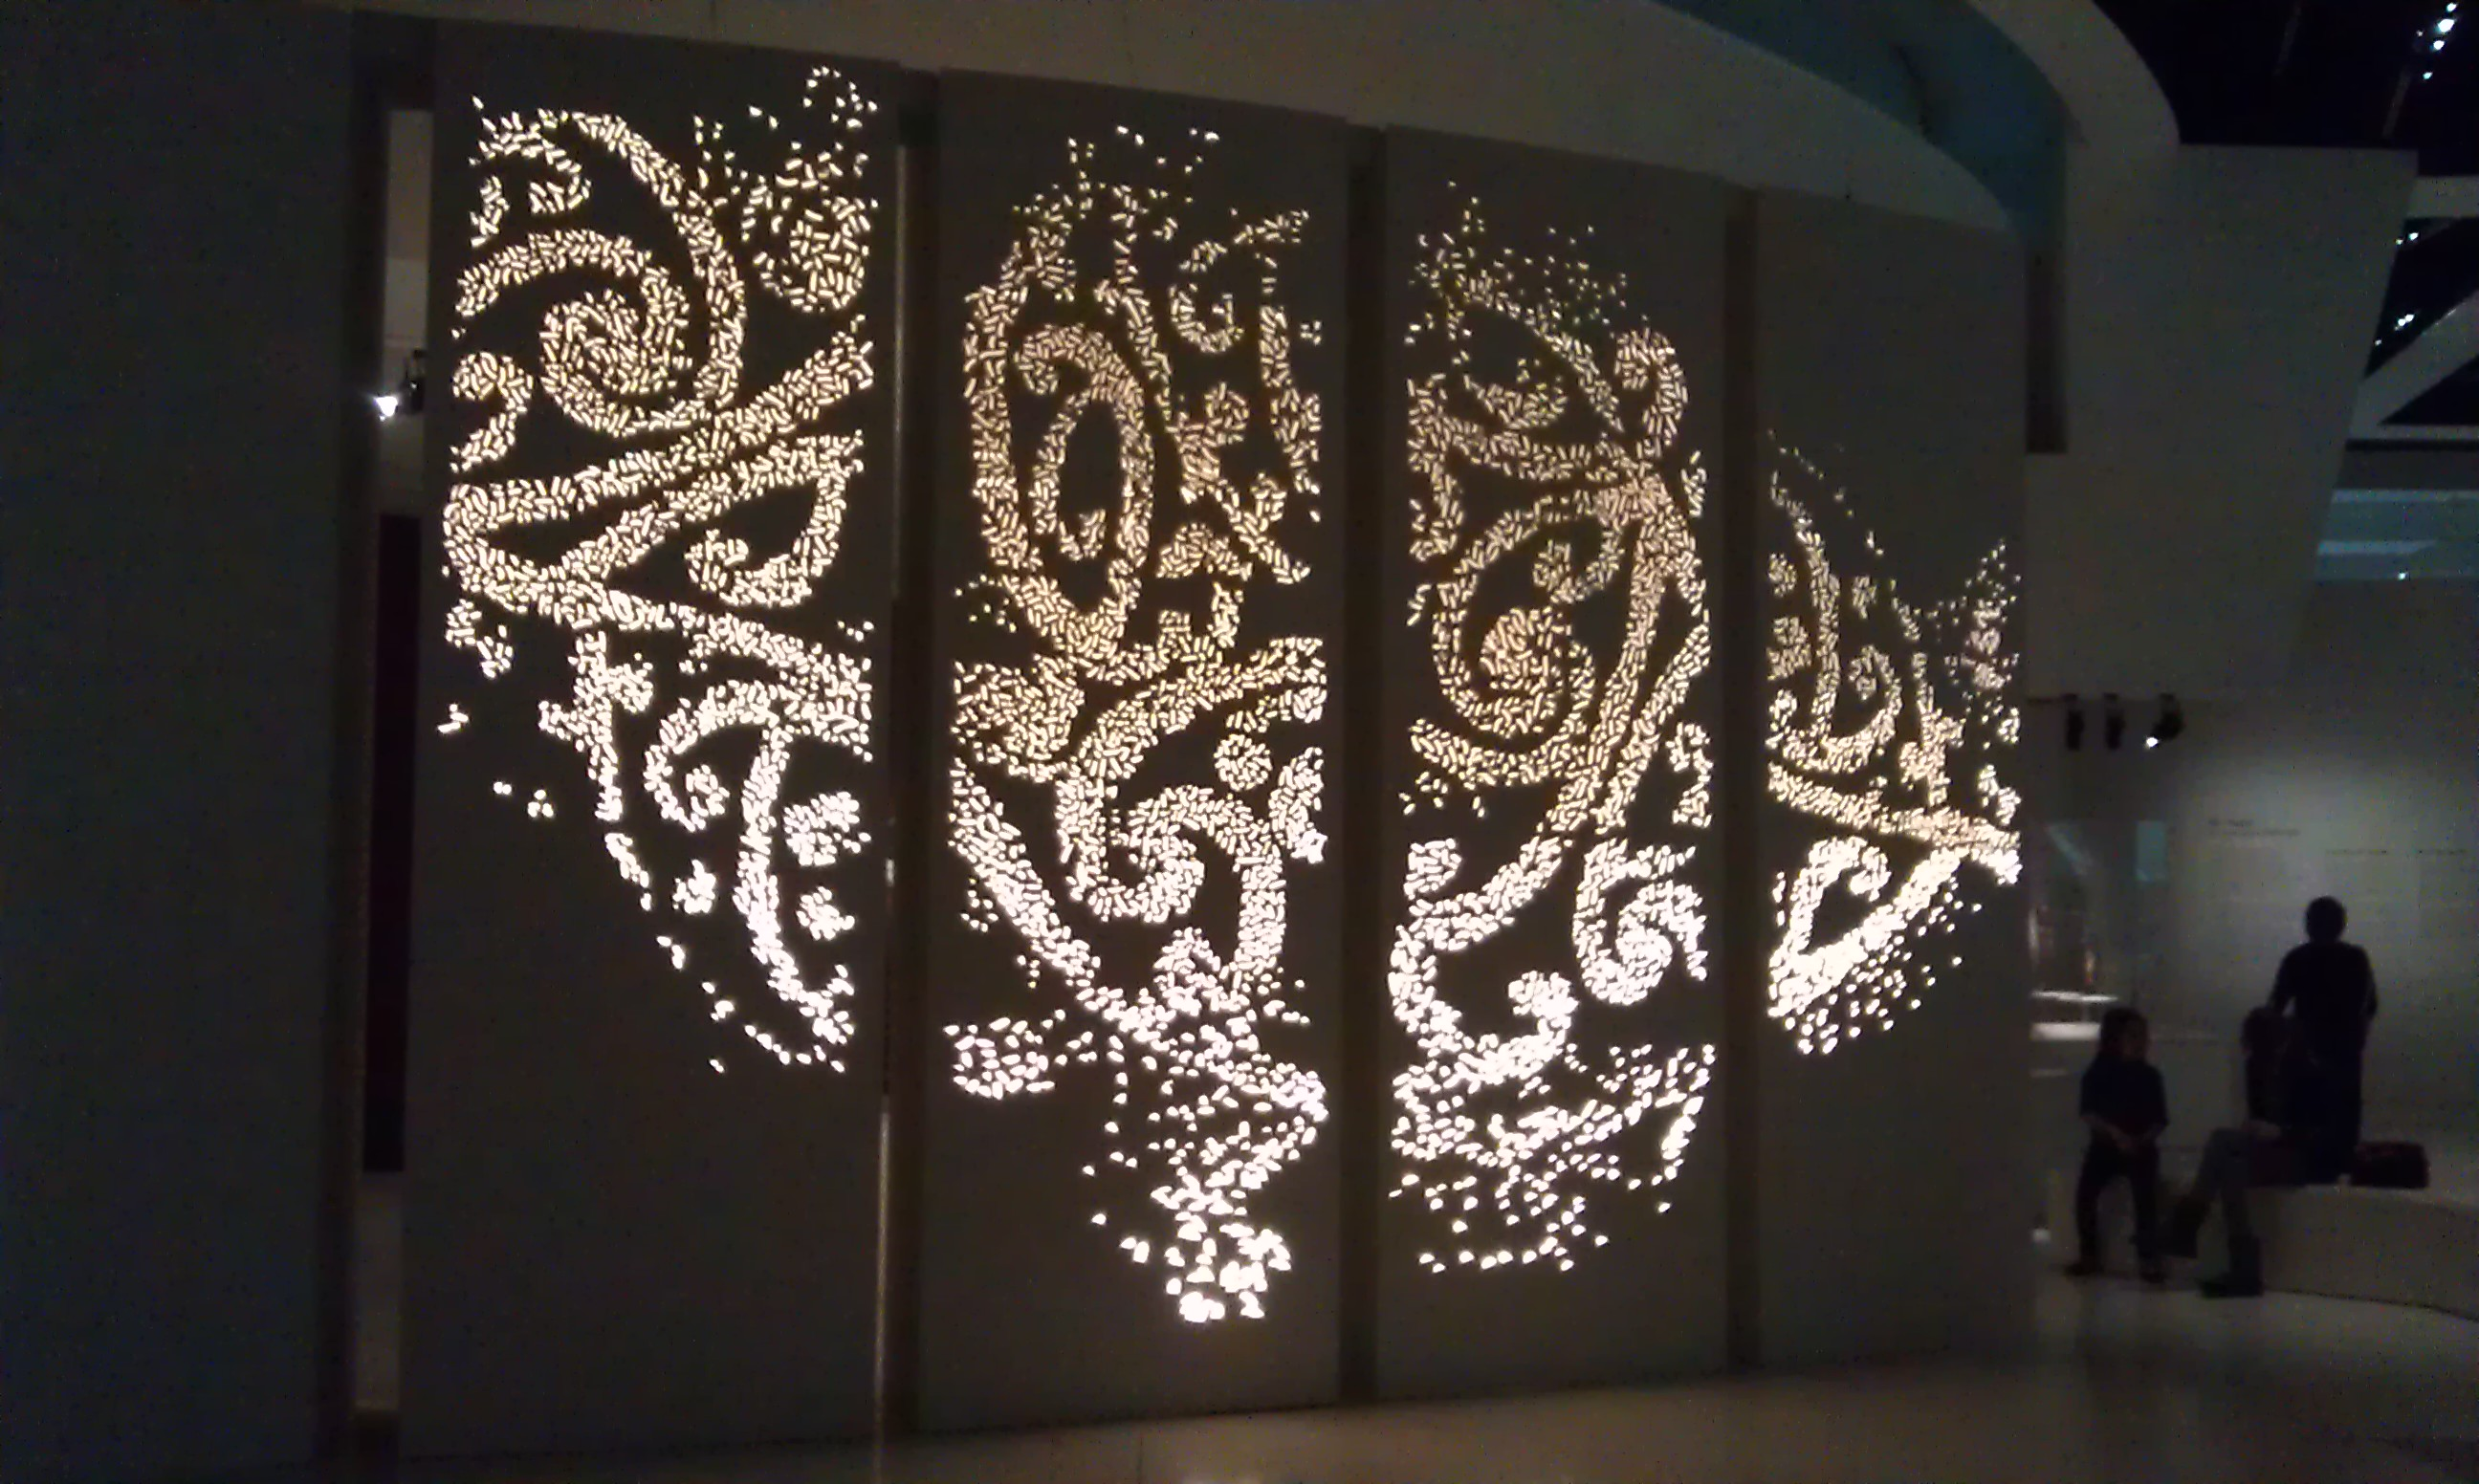 Quai Branly Museum Maori Exhibition Lighting Wall Lucept